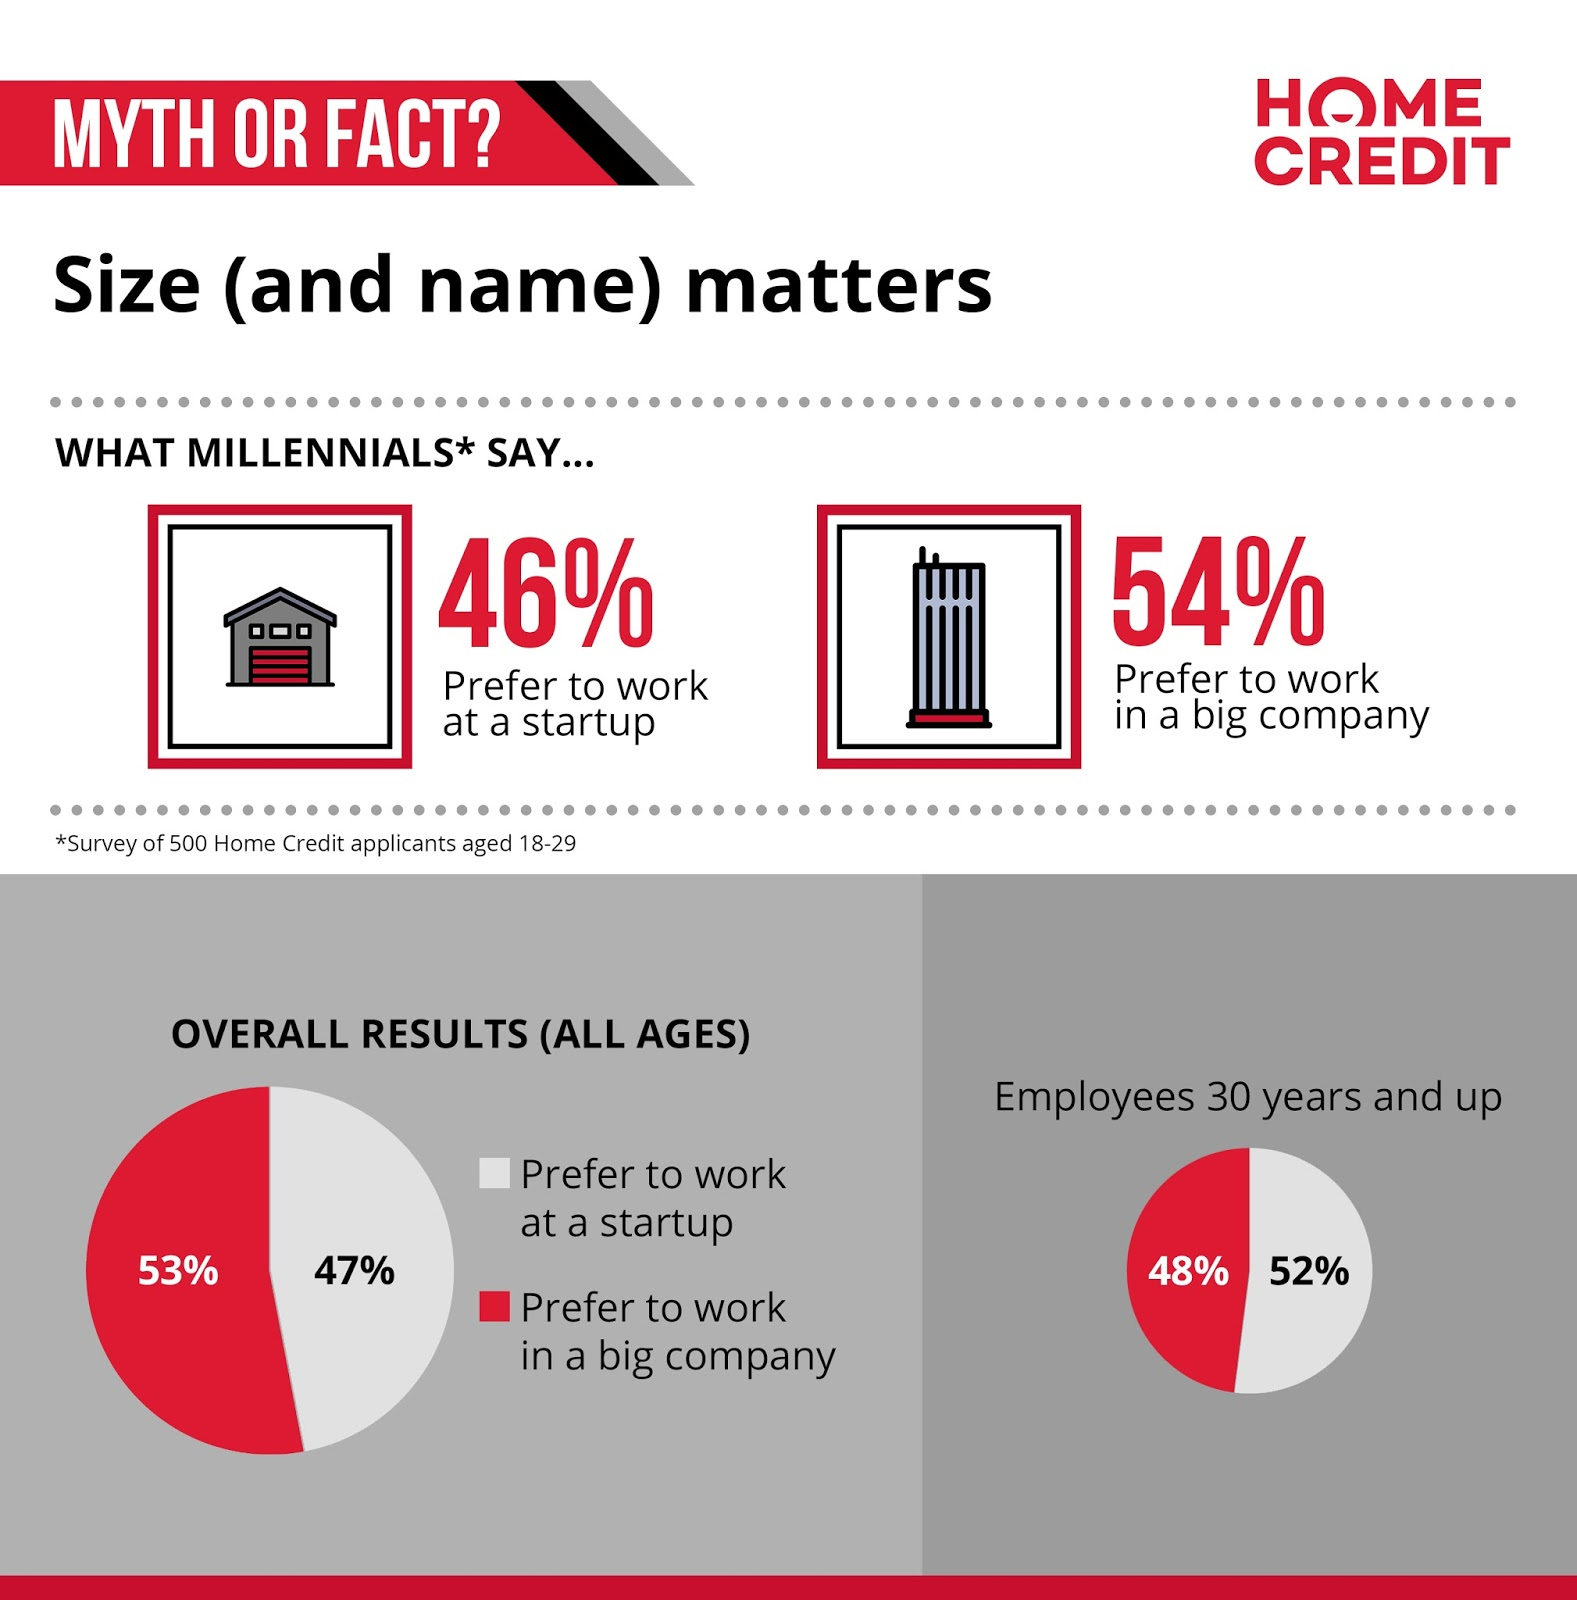 Myth or fact: size (and name) matters